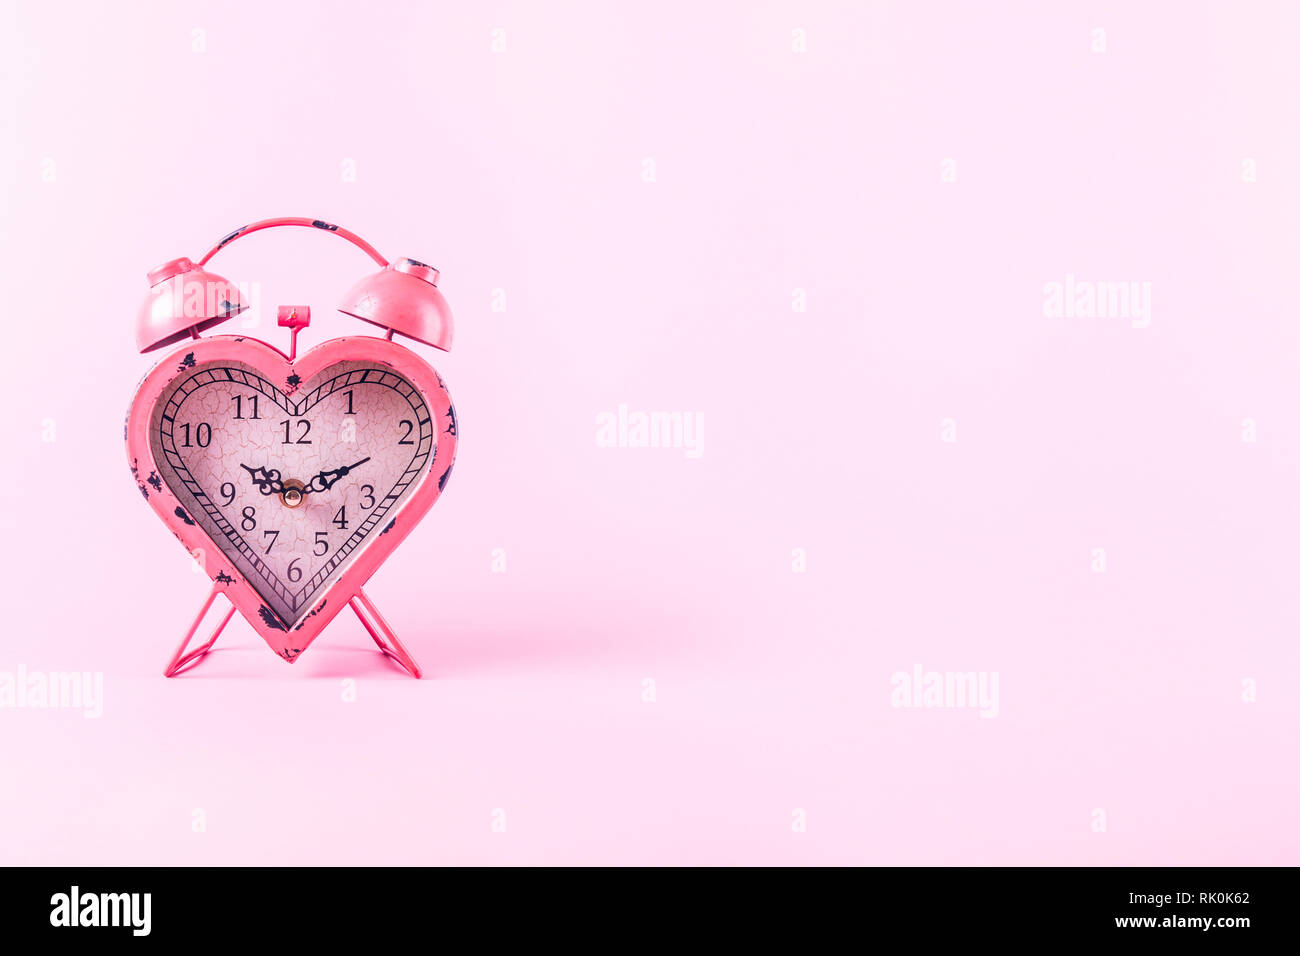 Heart shaped clock on pink background.  Valentines day and love infitity and duration concept. Horizontal - Stock Image